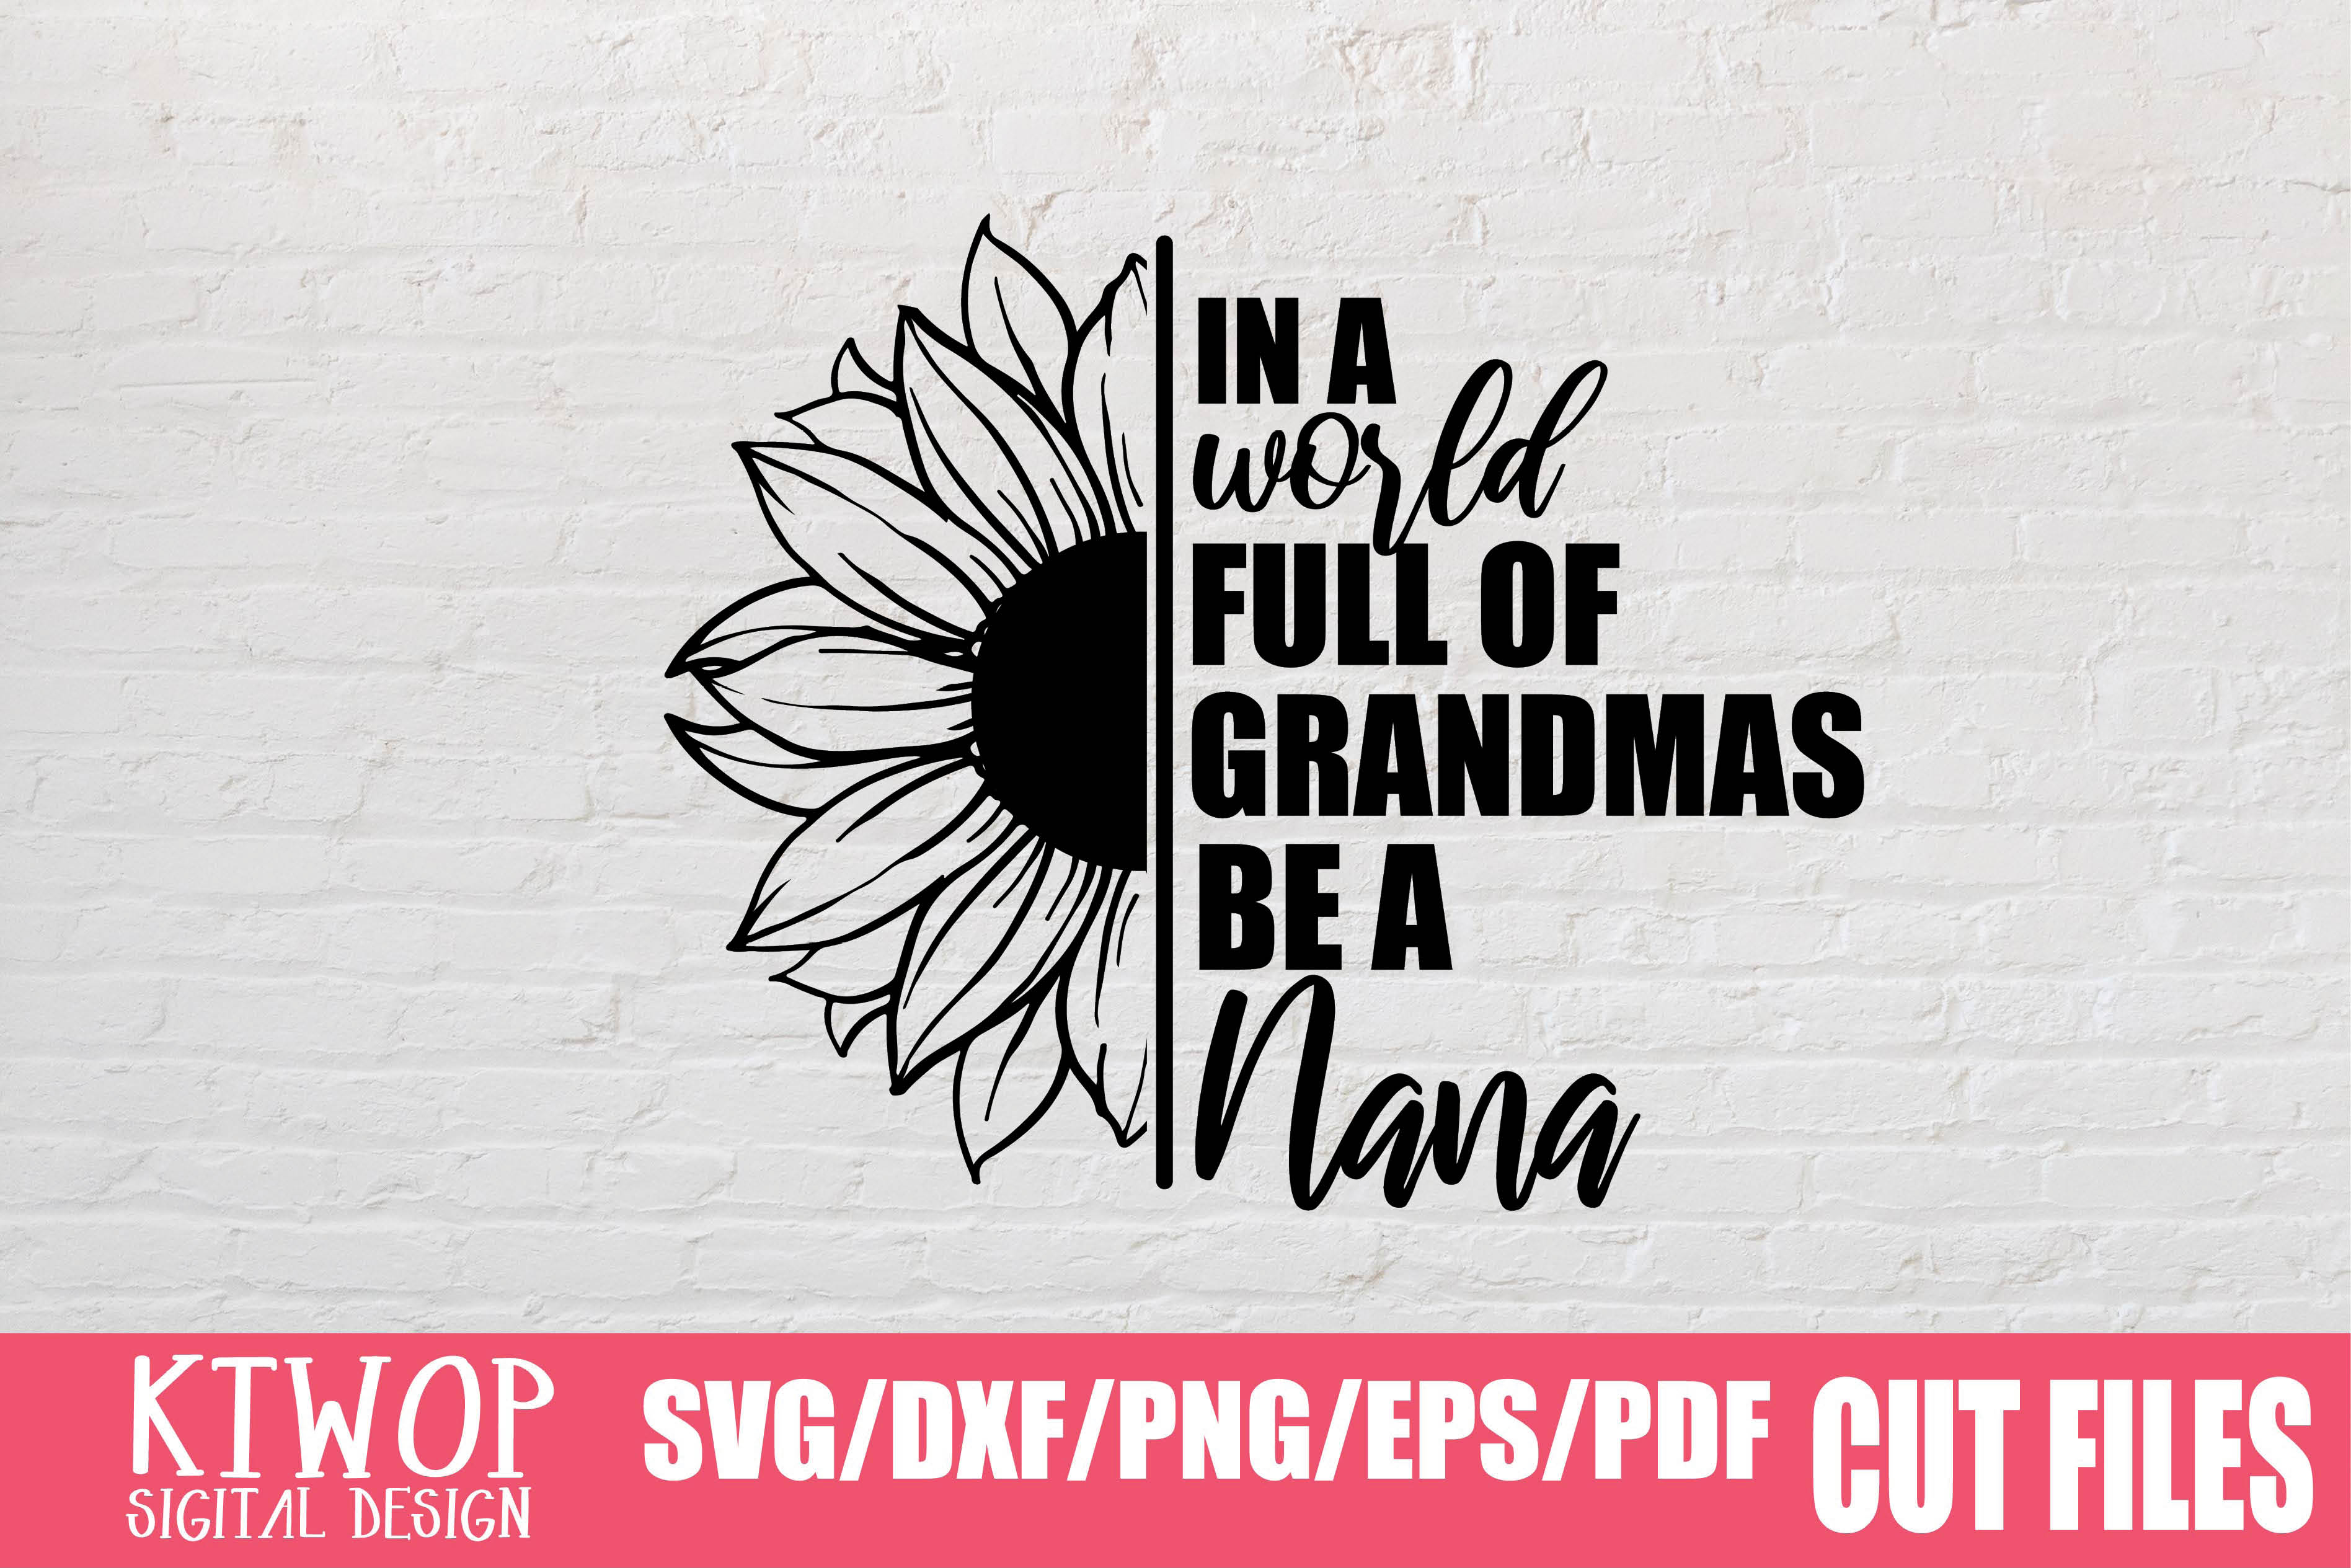 Download Free In A World Full Of Grandmas Be A Nana Graphic By Ktwop for Cricut Explore, Silhouette and other cutting machines.